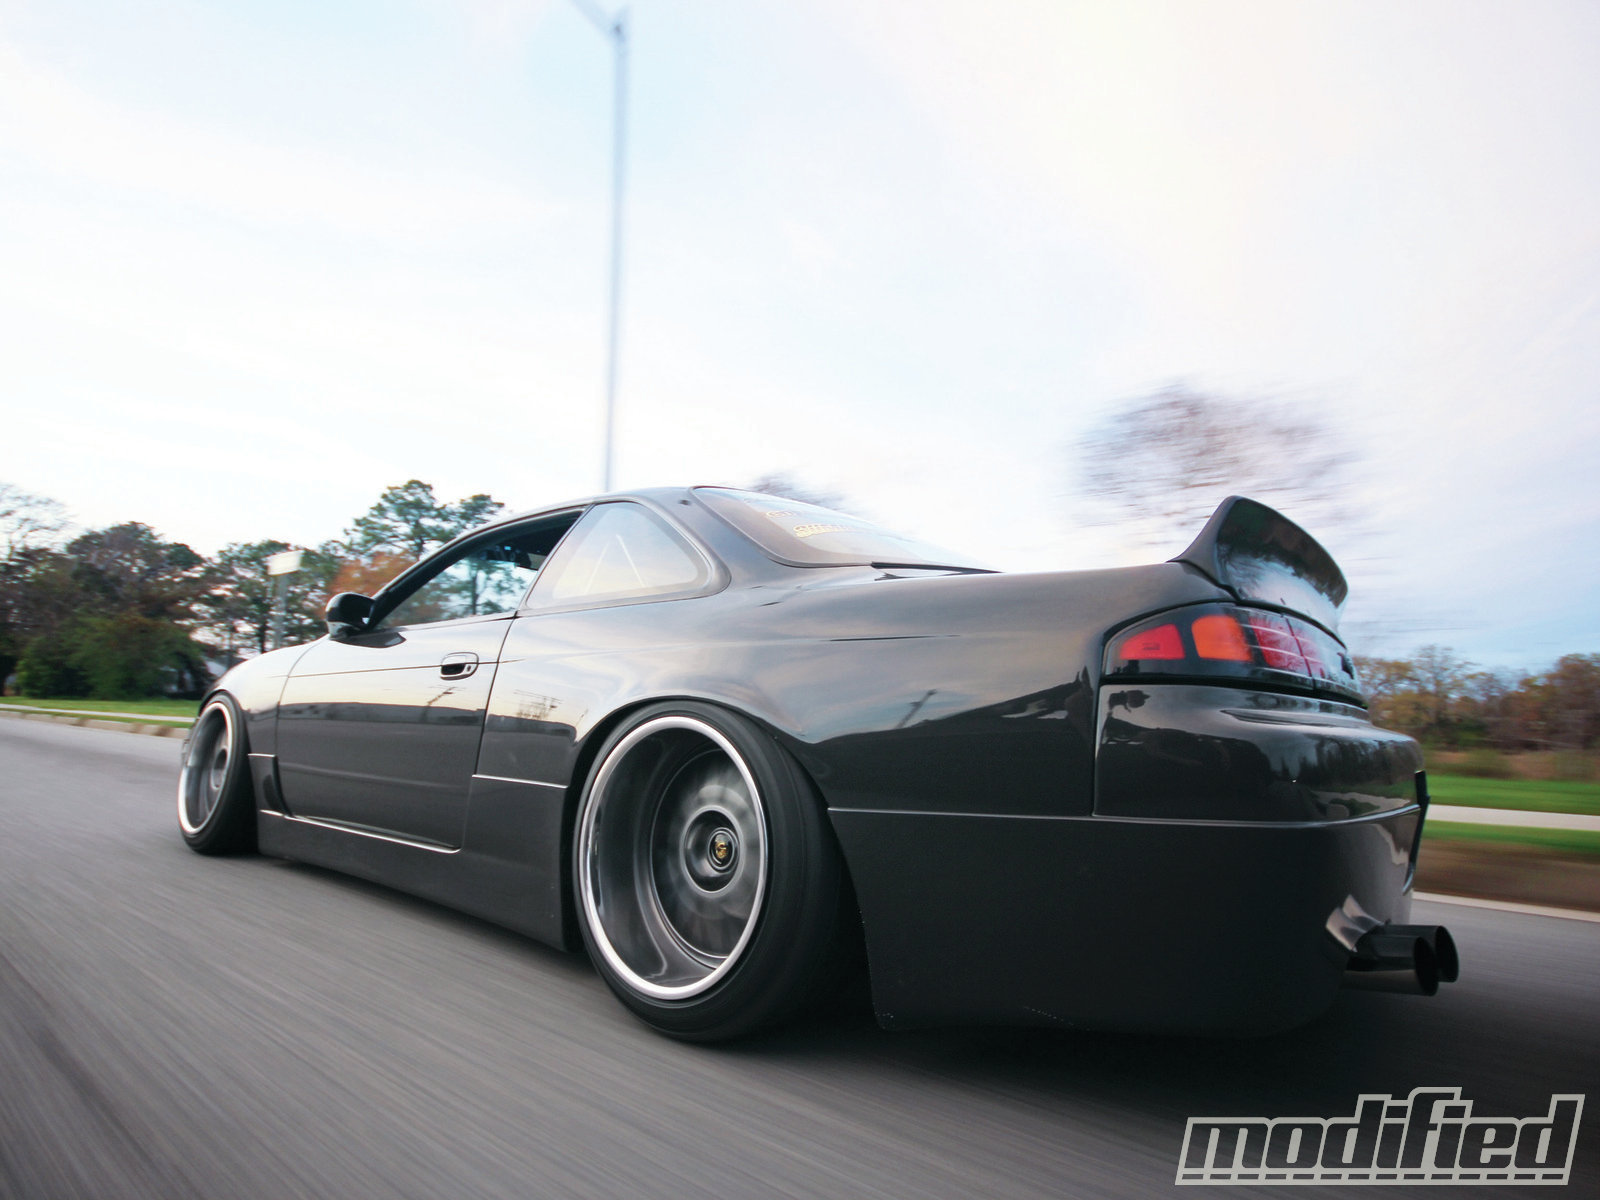 1995 Nissan 240SX - Modified Magazine